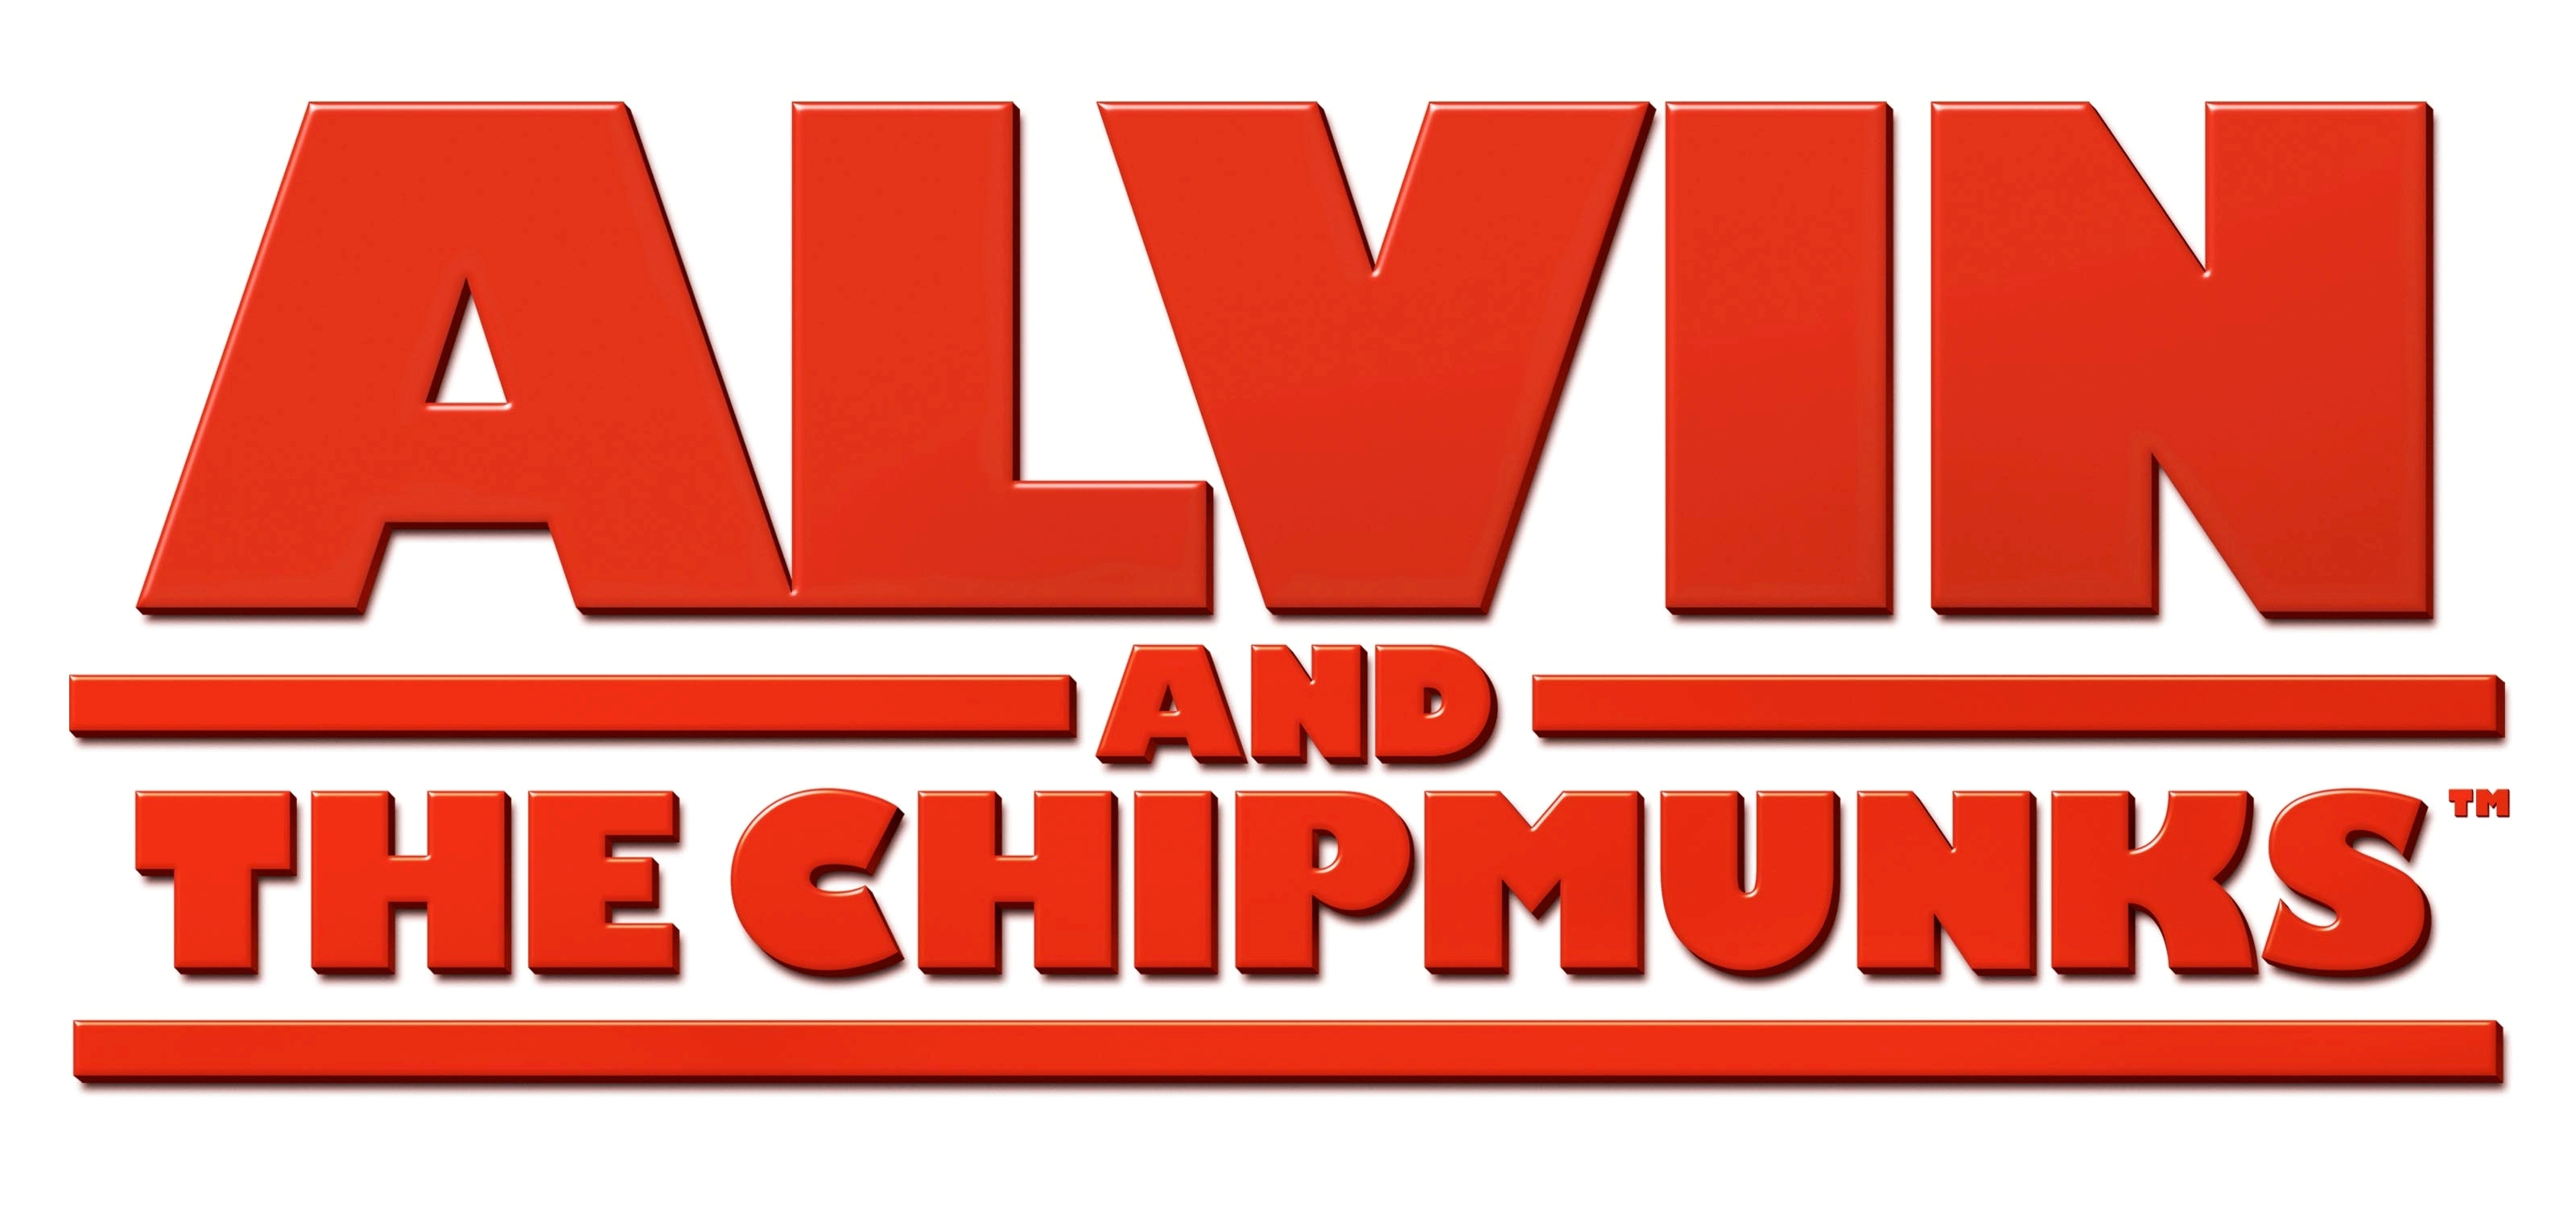 Alvin and the Chipmunks in film - Wikipedia